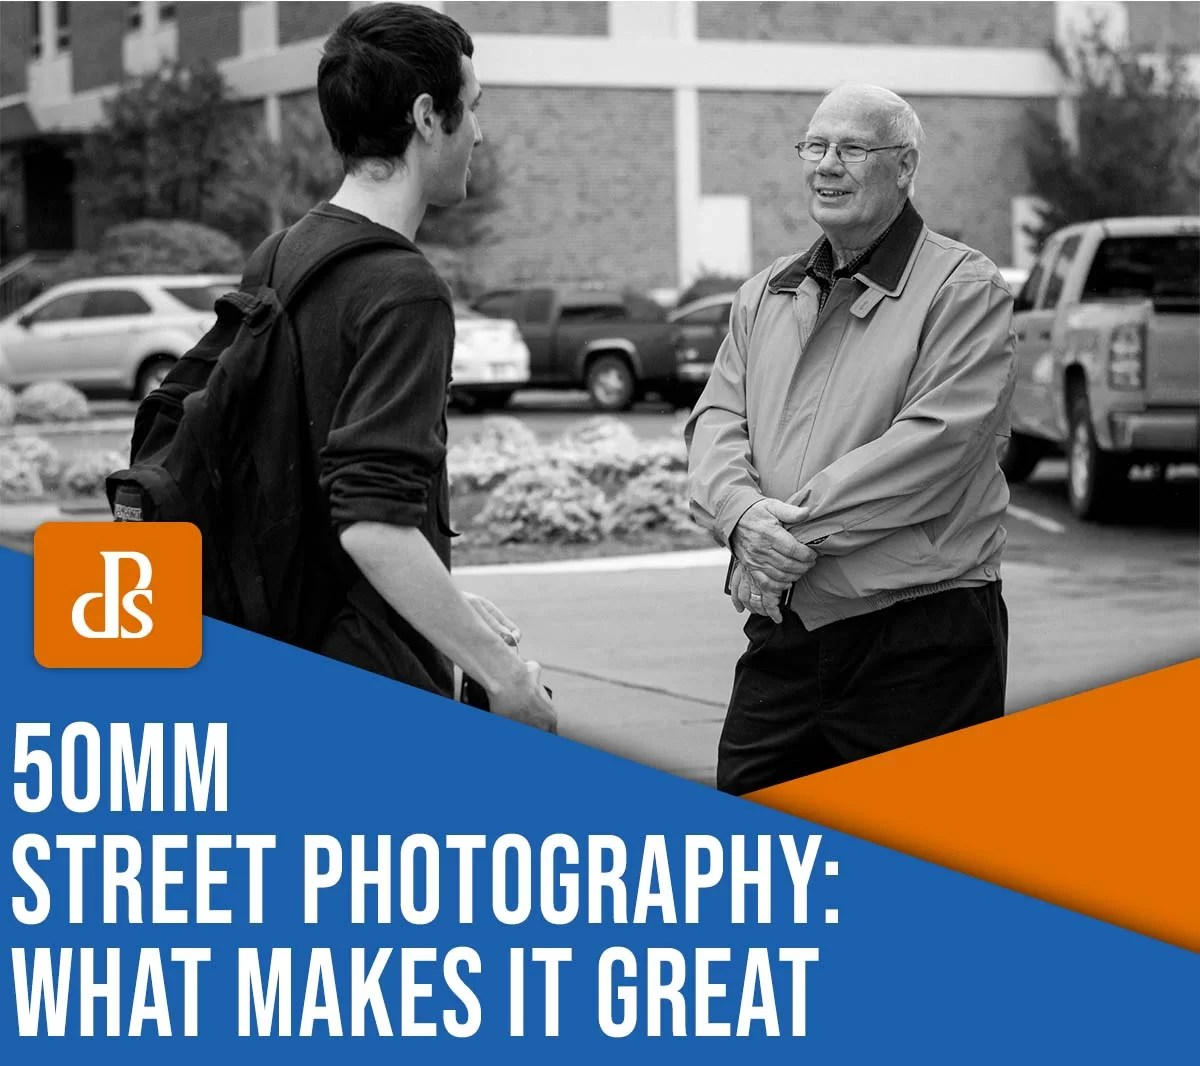 50mm street photography: what makes it great